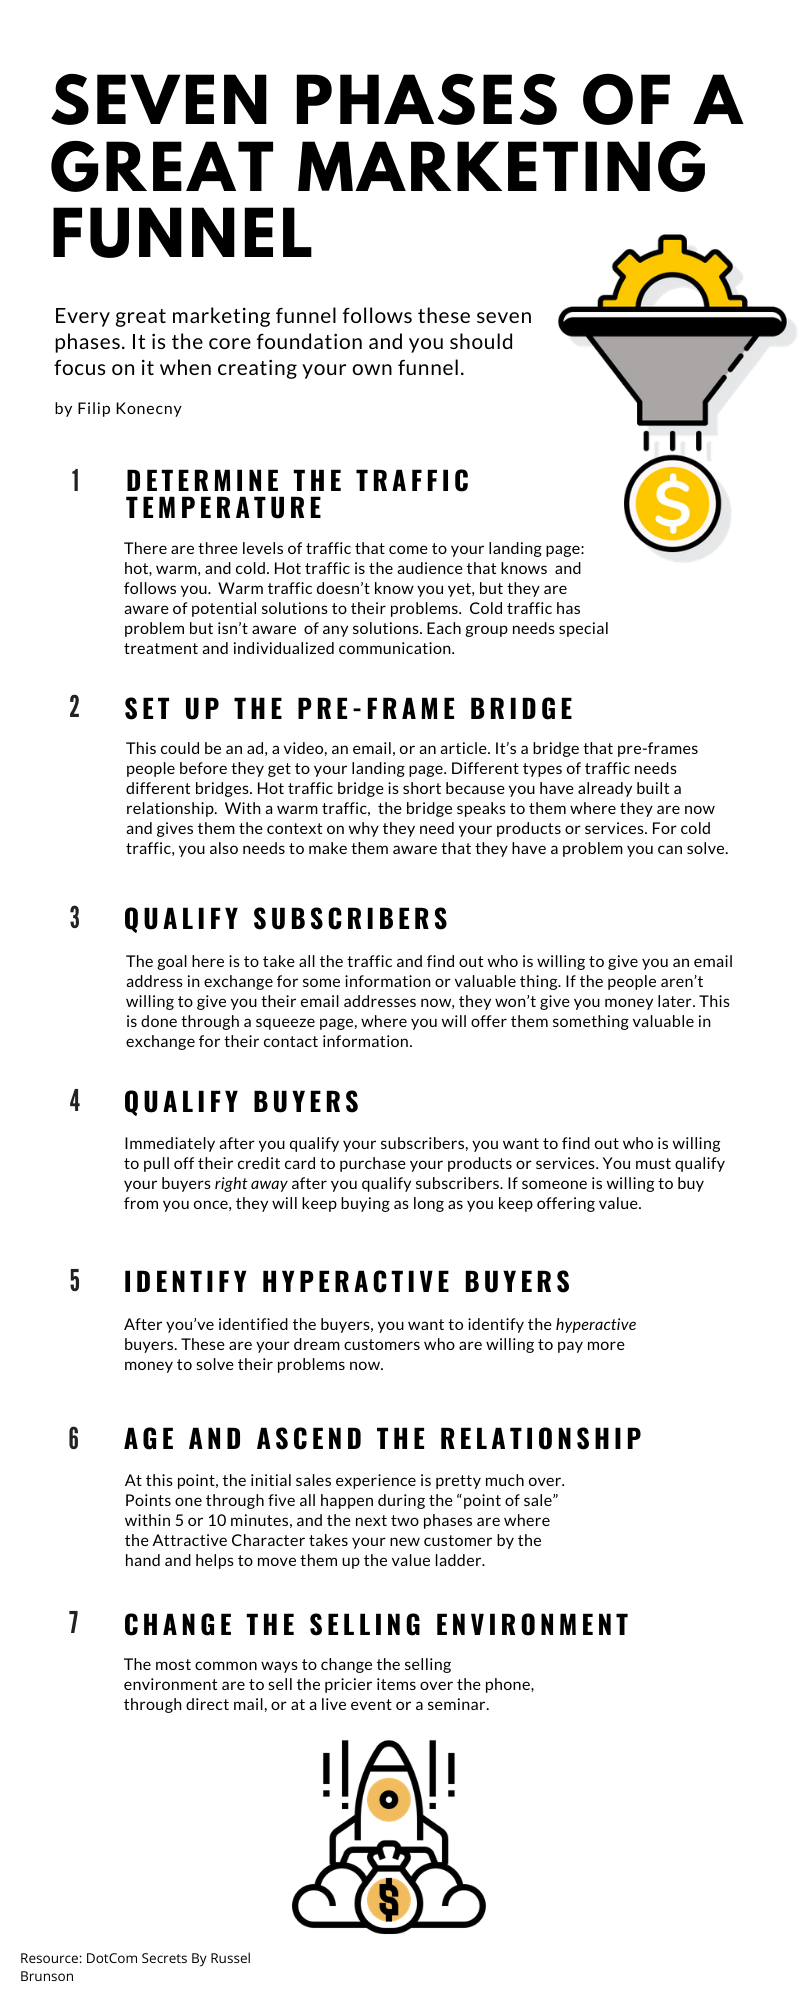 Seven phases of a great marketing funnel infographic